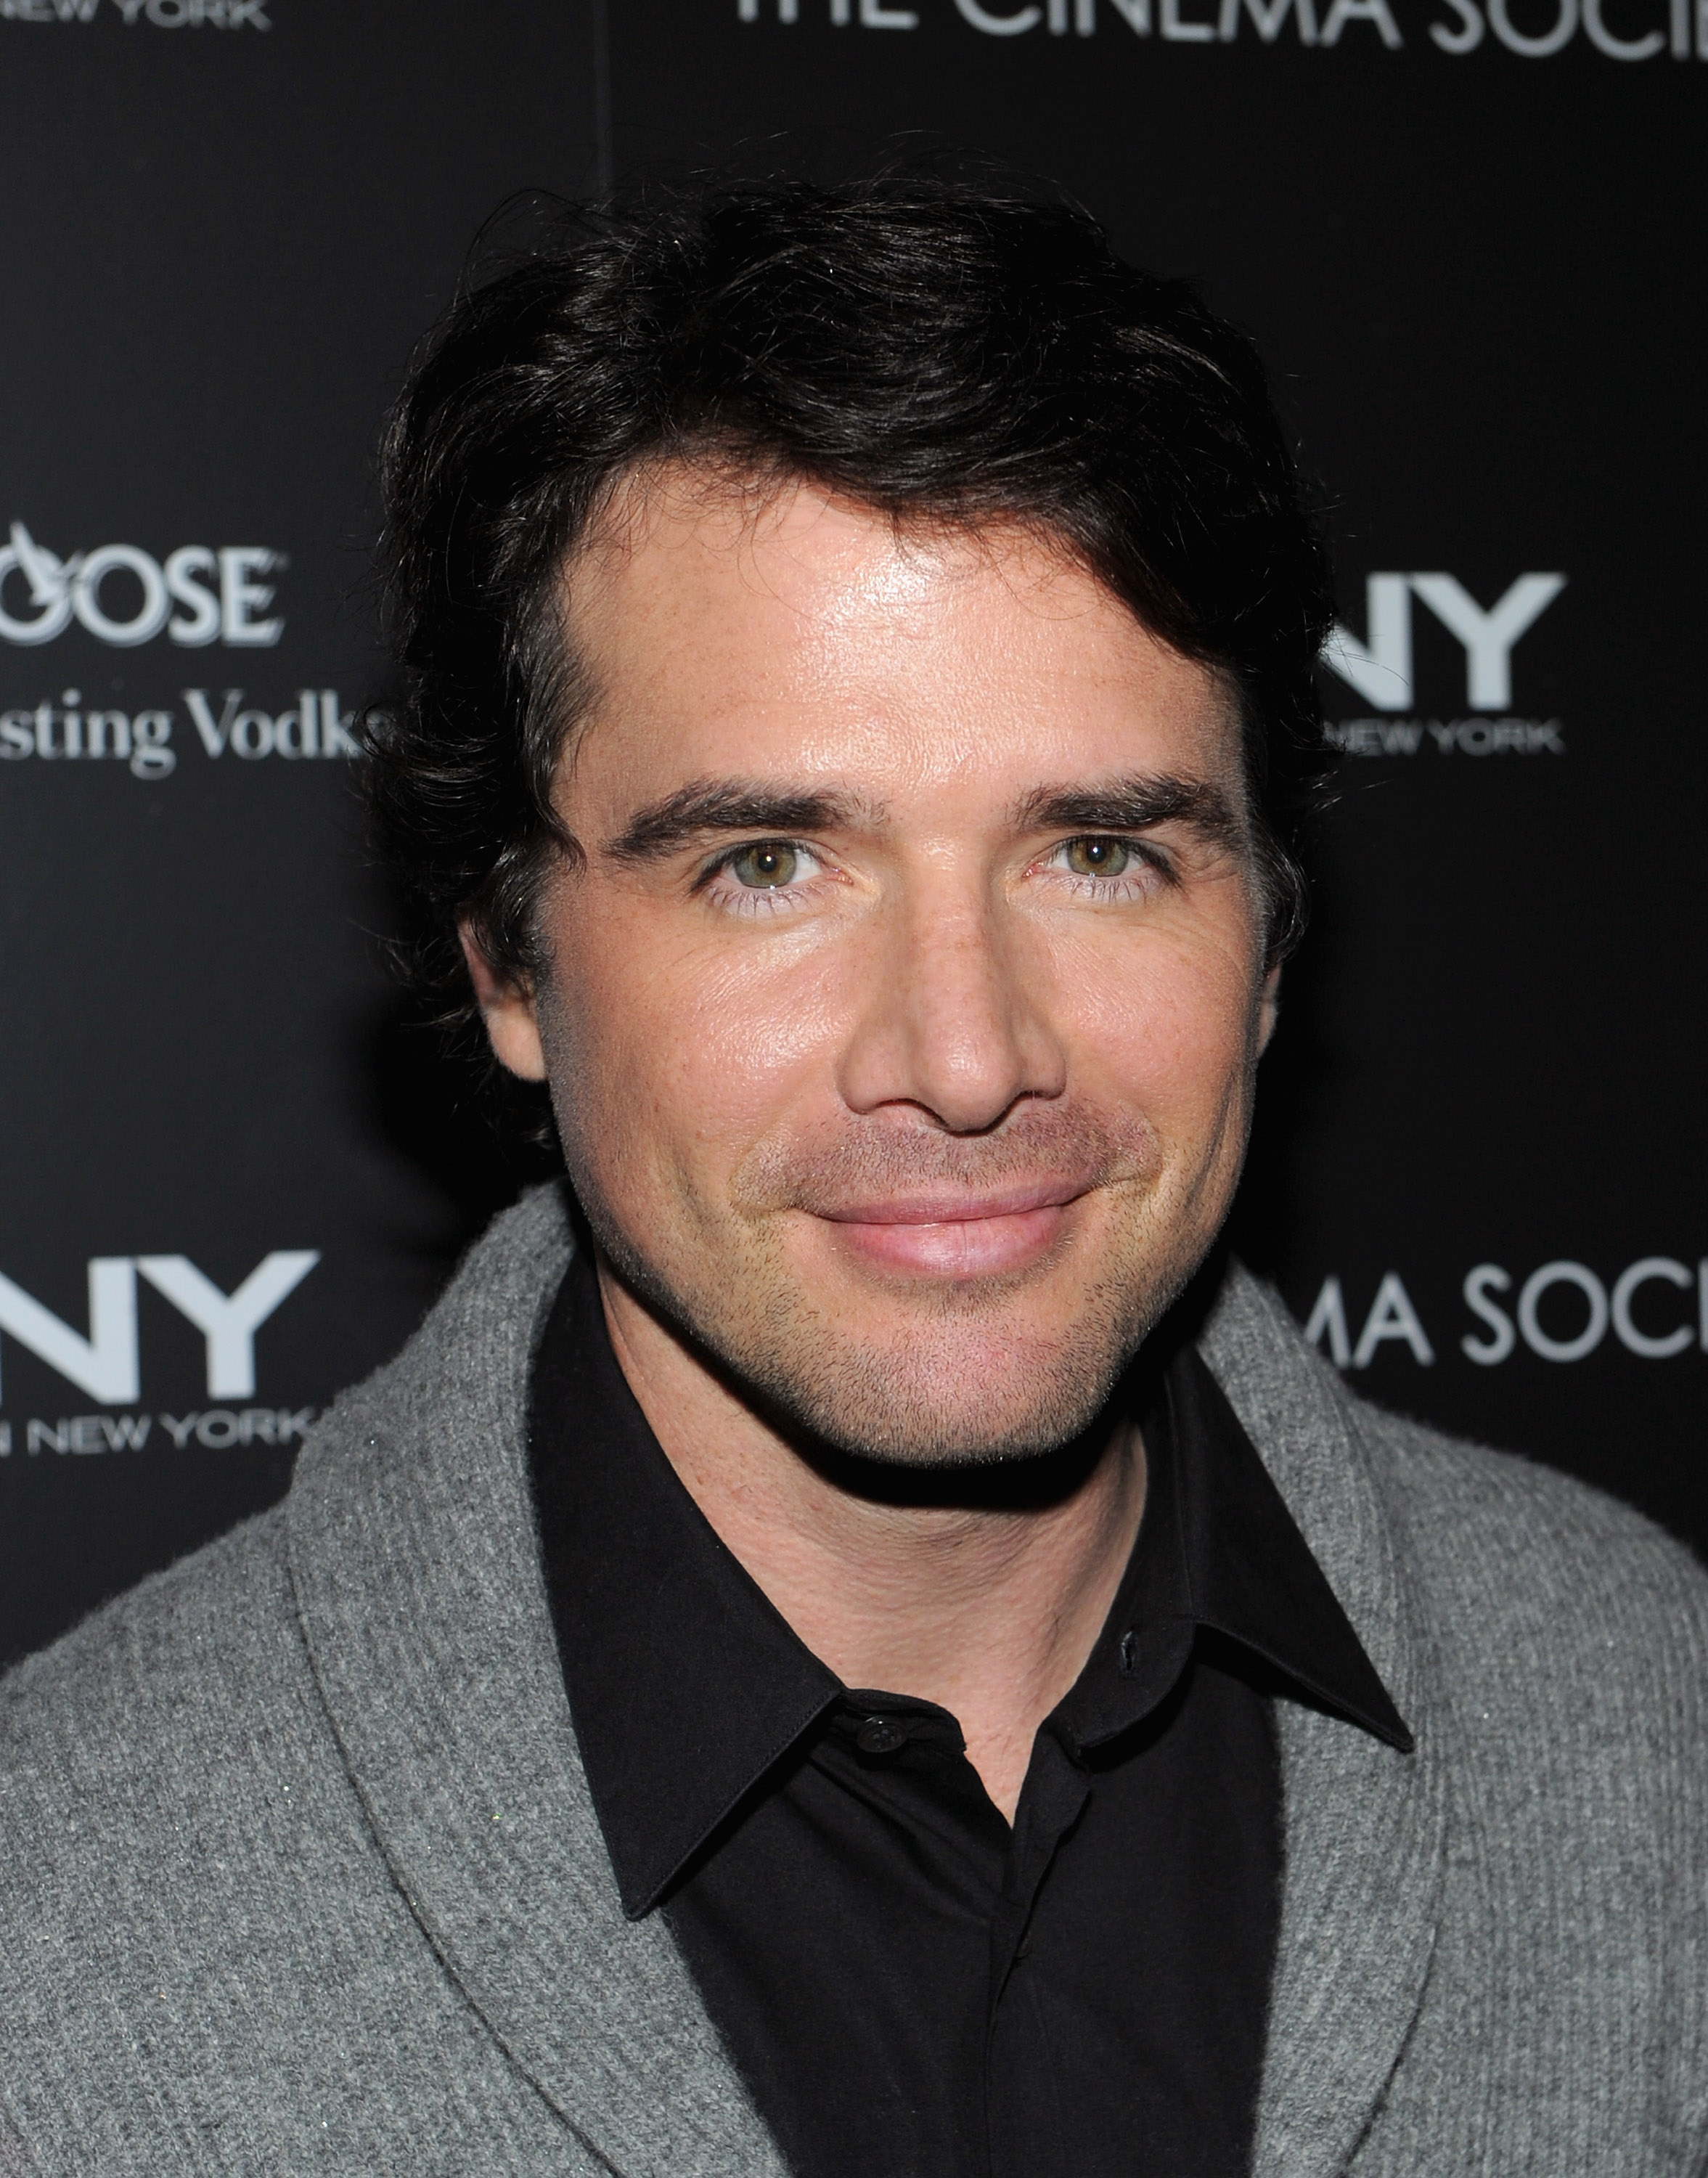 Matthew Settle out in NYC.